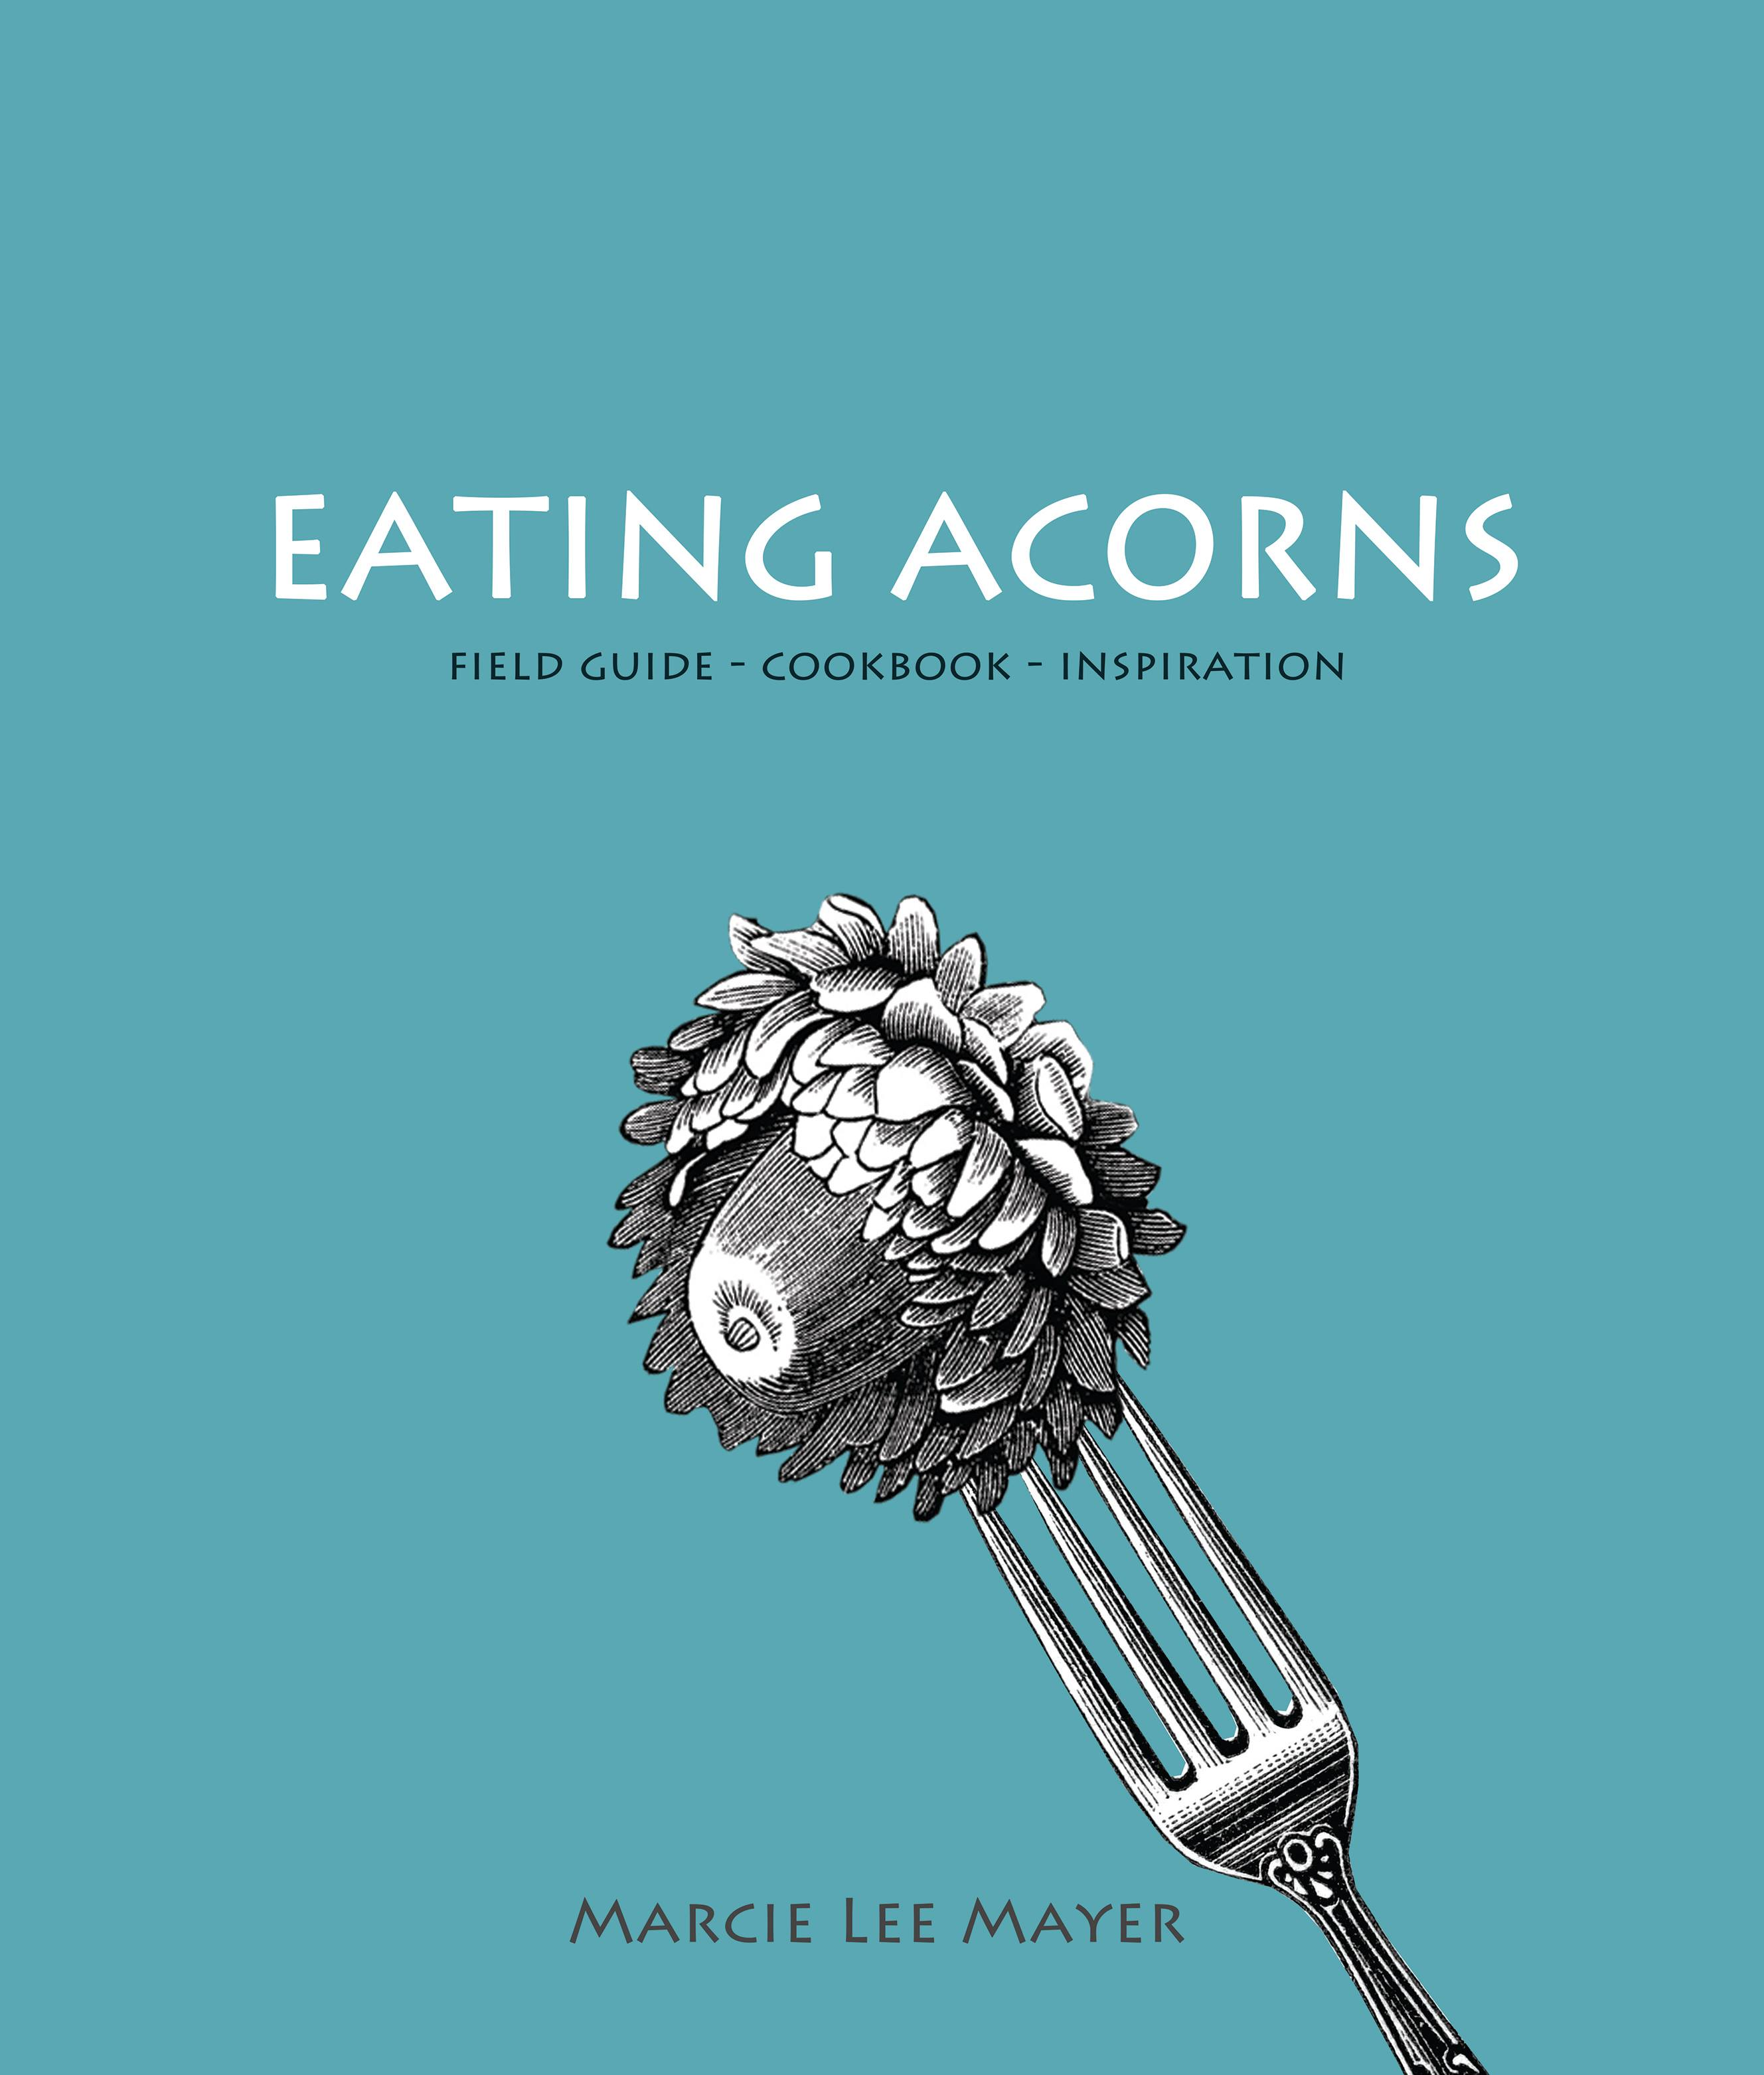 Eating Acorns